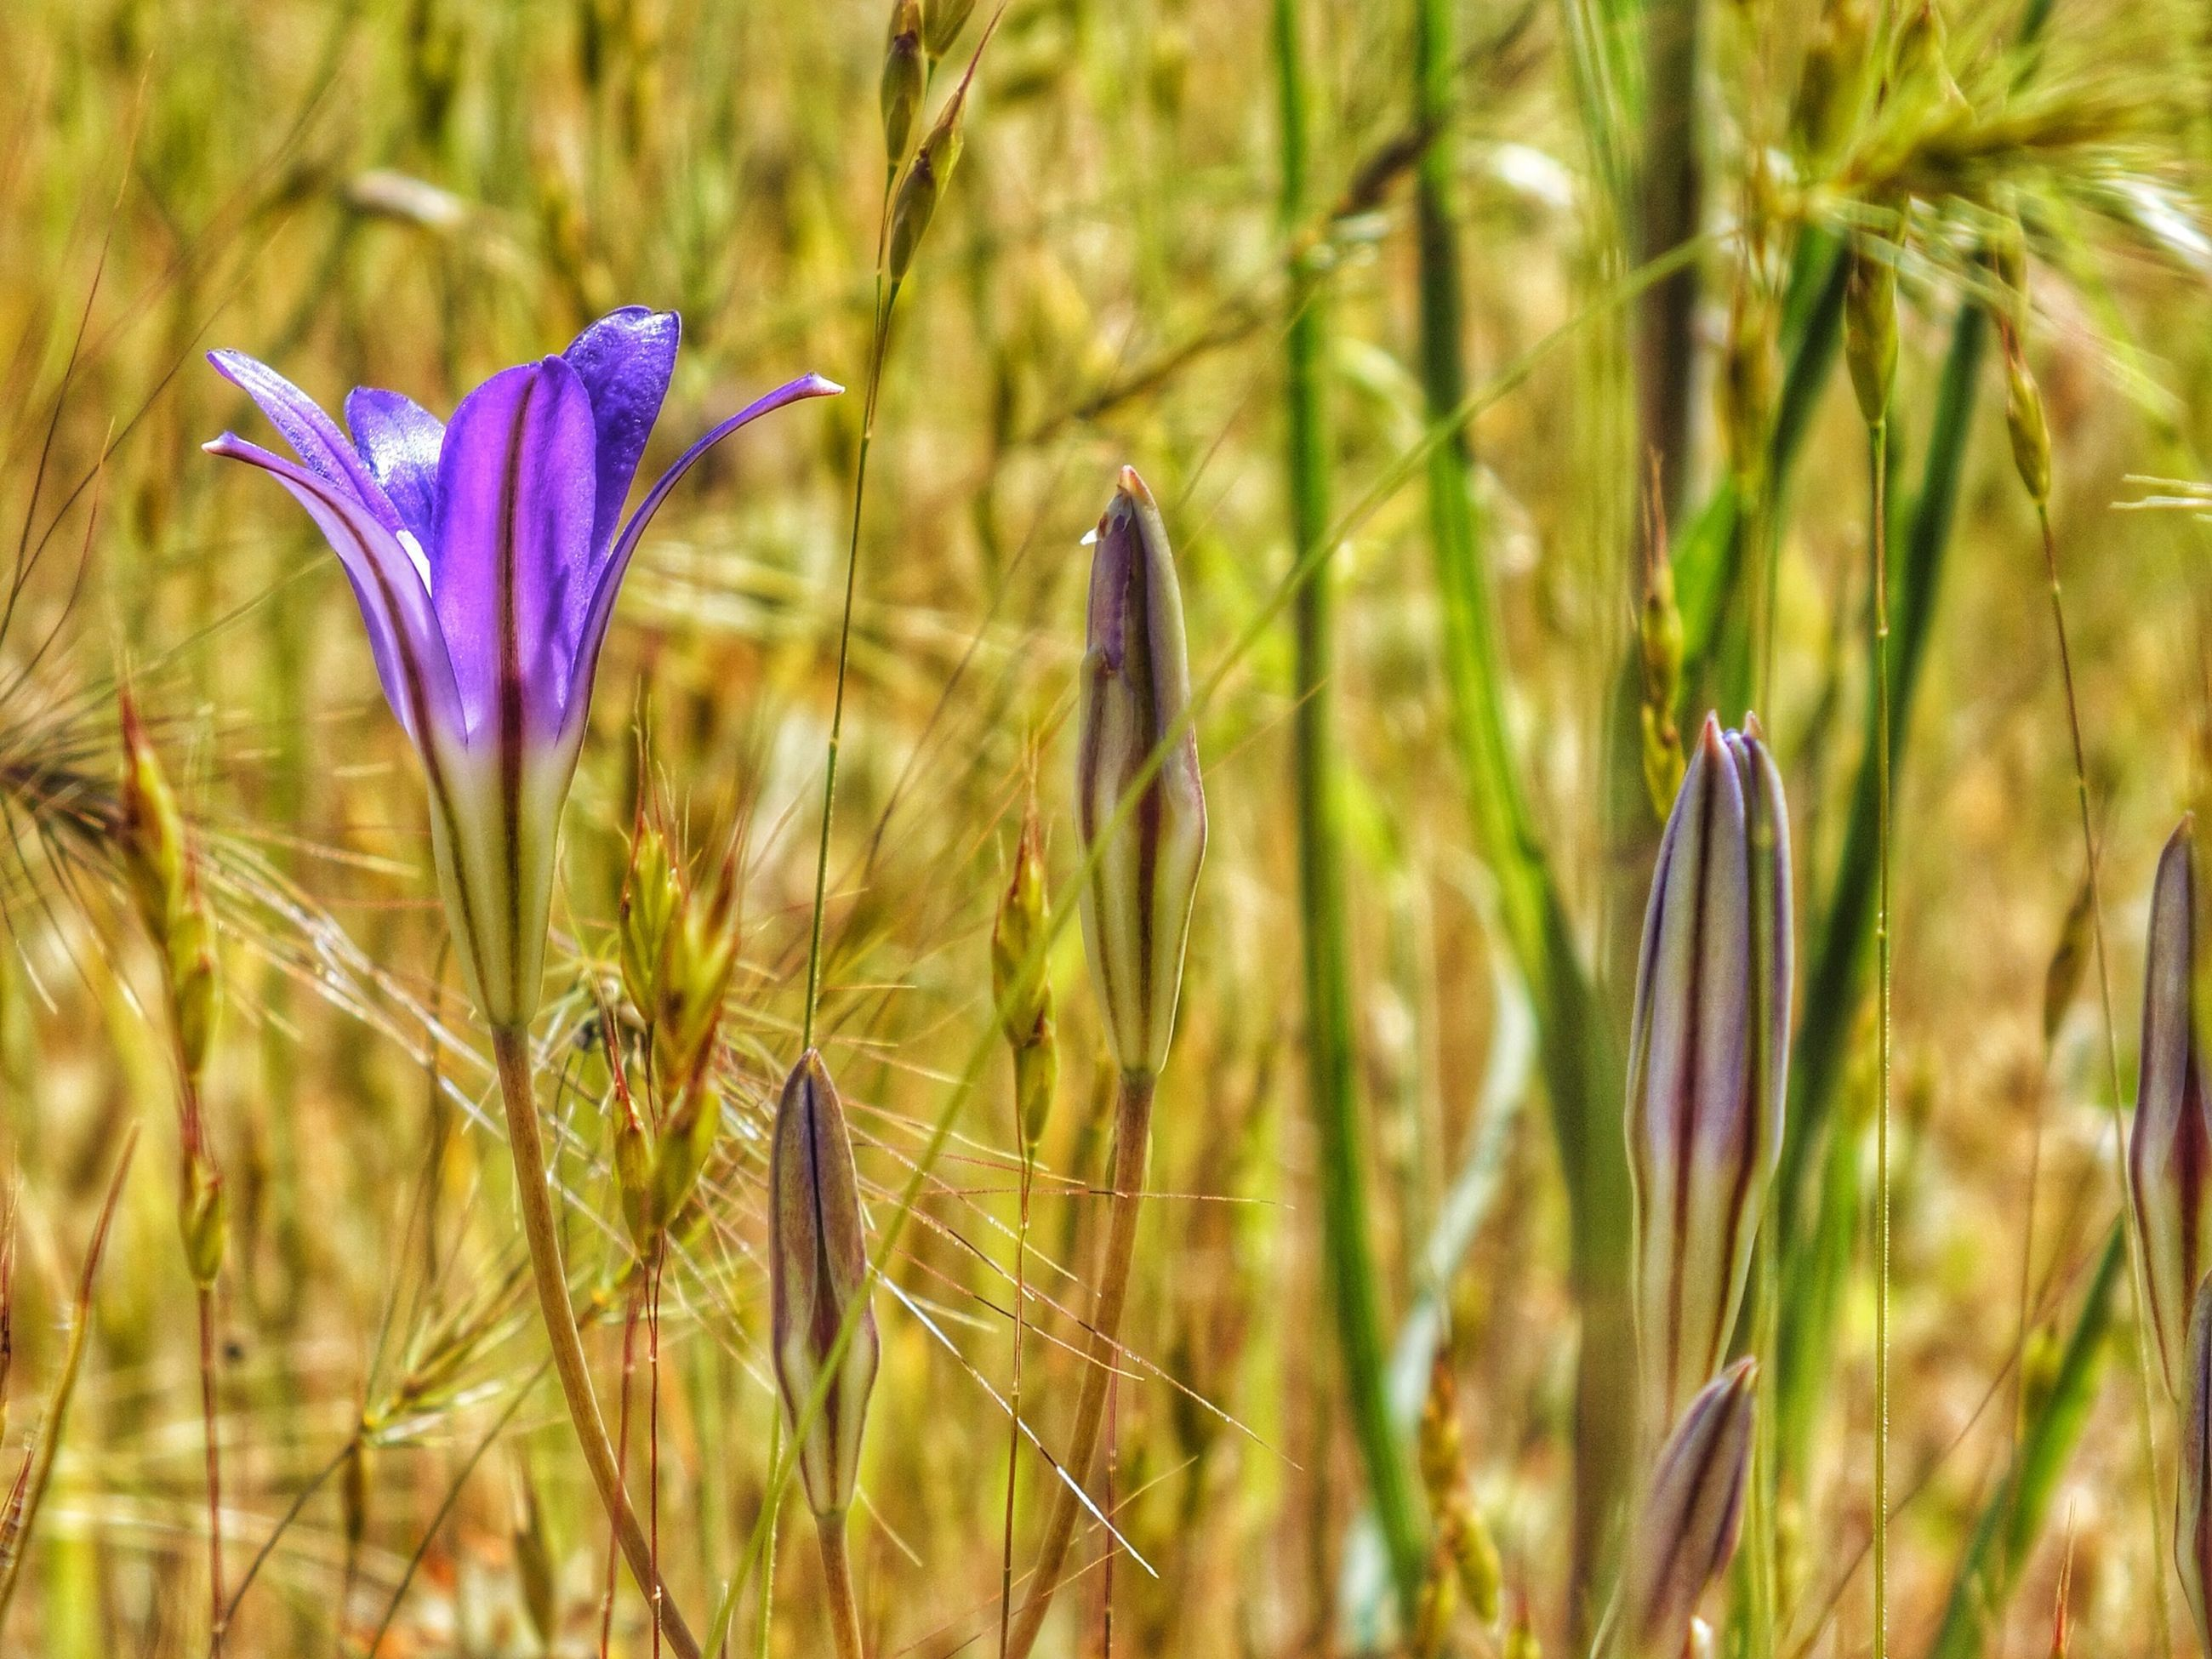 flower, fragility, purple, growth, focus on foreground, plant, close-up, freshness, nature, beauty in nature, selective focus, stem, blue, day, outdoors, field, petal, no people, flying, tranquility